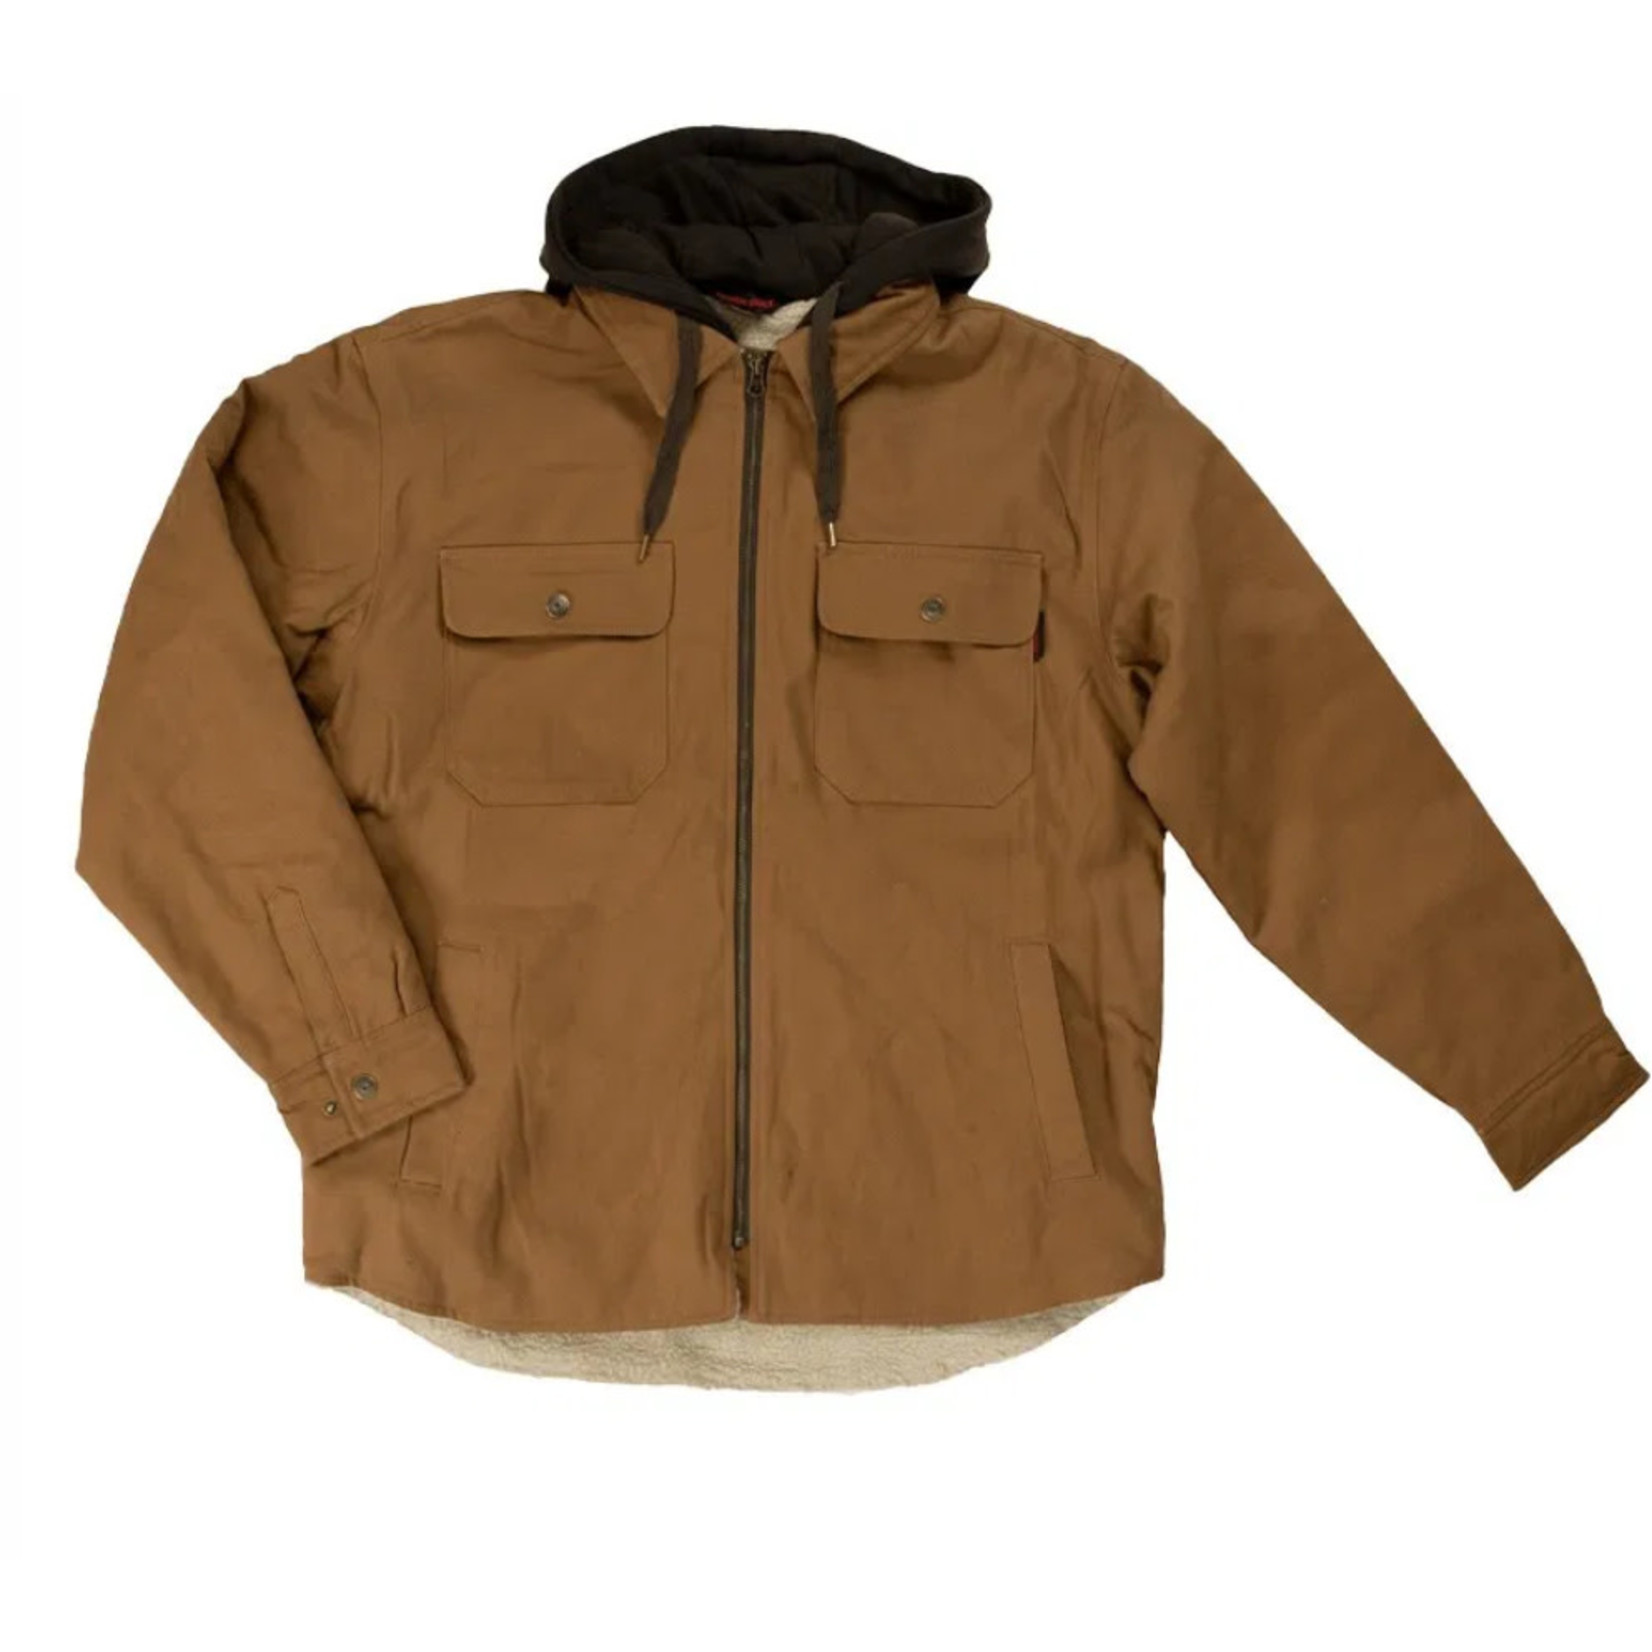 Tough Duck Tough Duck Sherpa Lined Jacket Button Up Fooler Hood Canvas Brown WS031